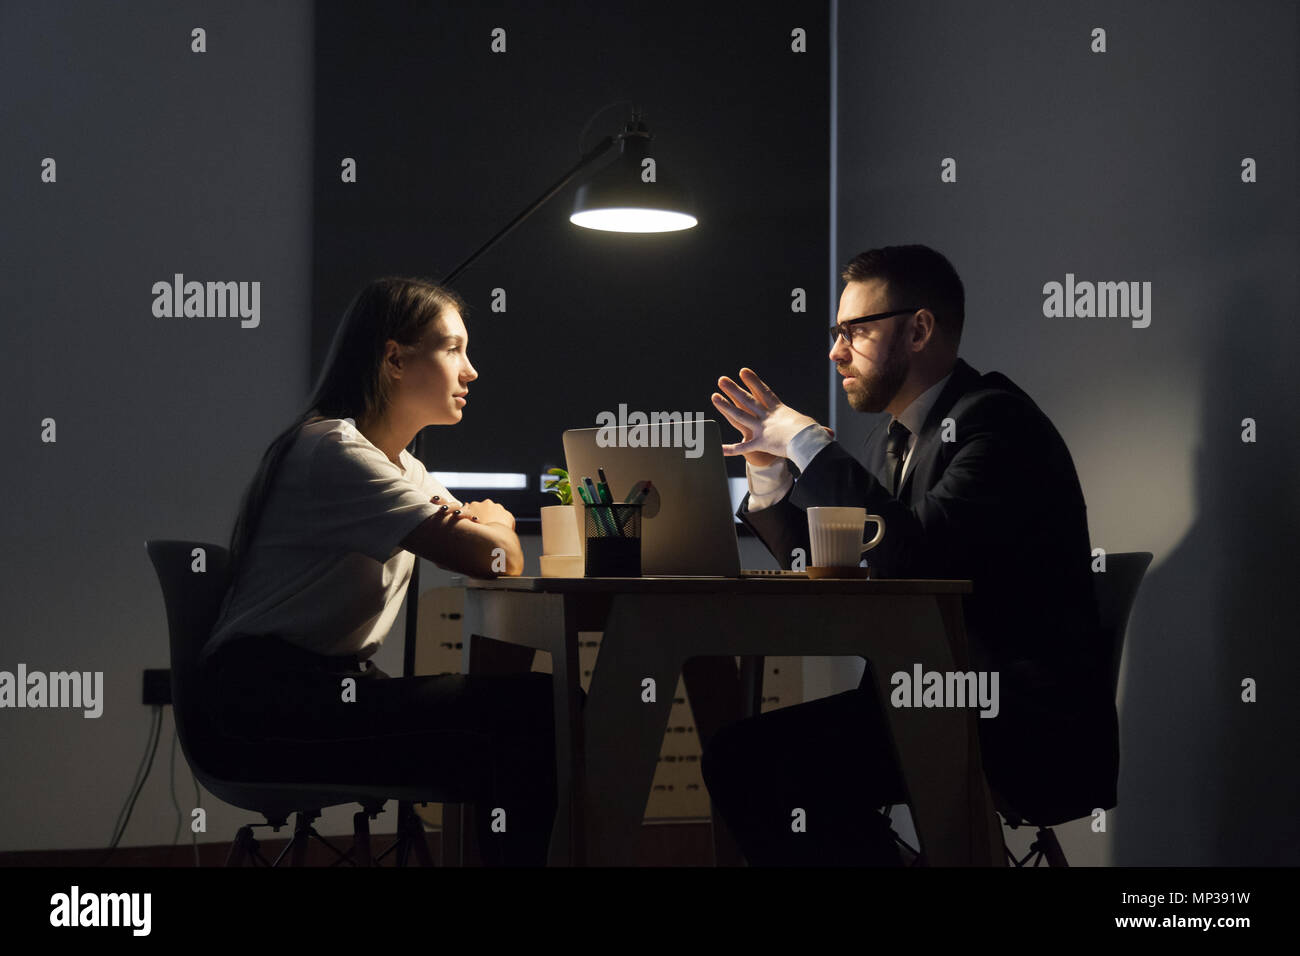 Colleagues discussing business strategies in office at night - Stock Image